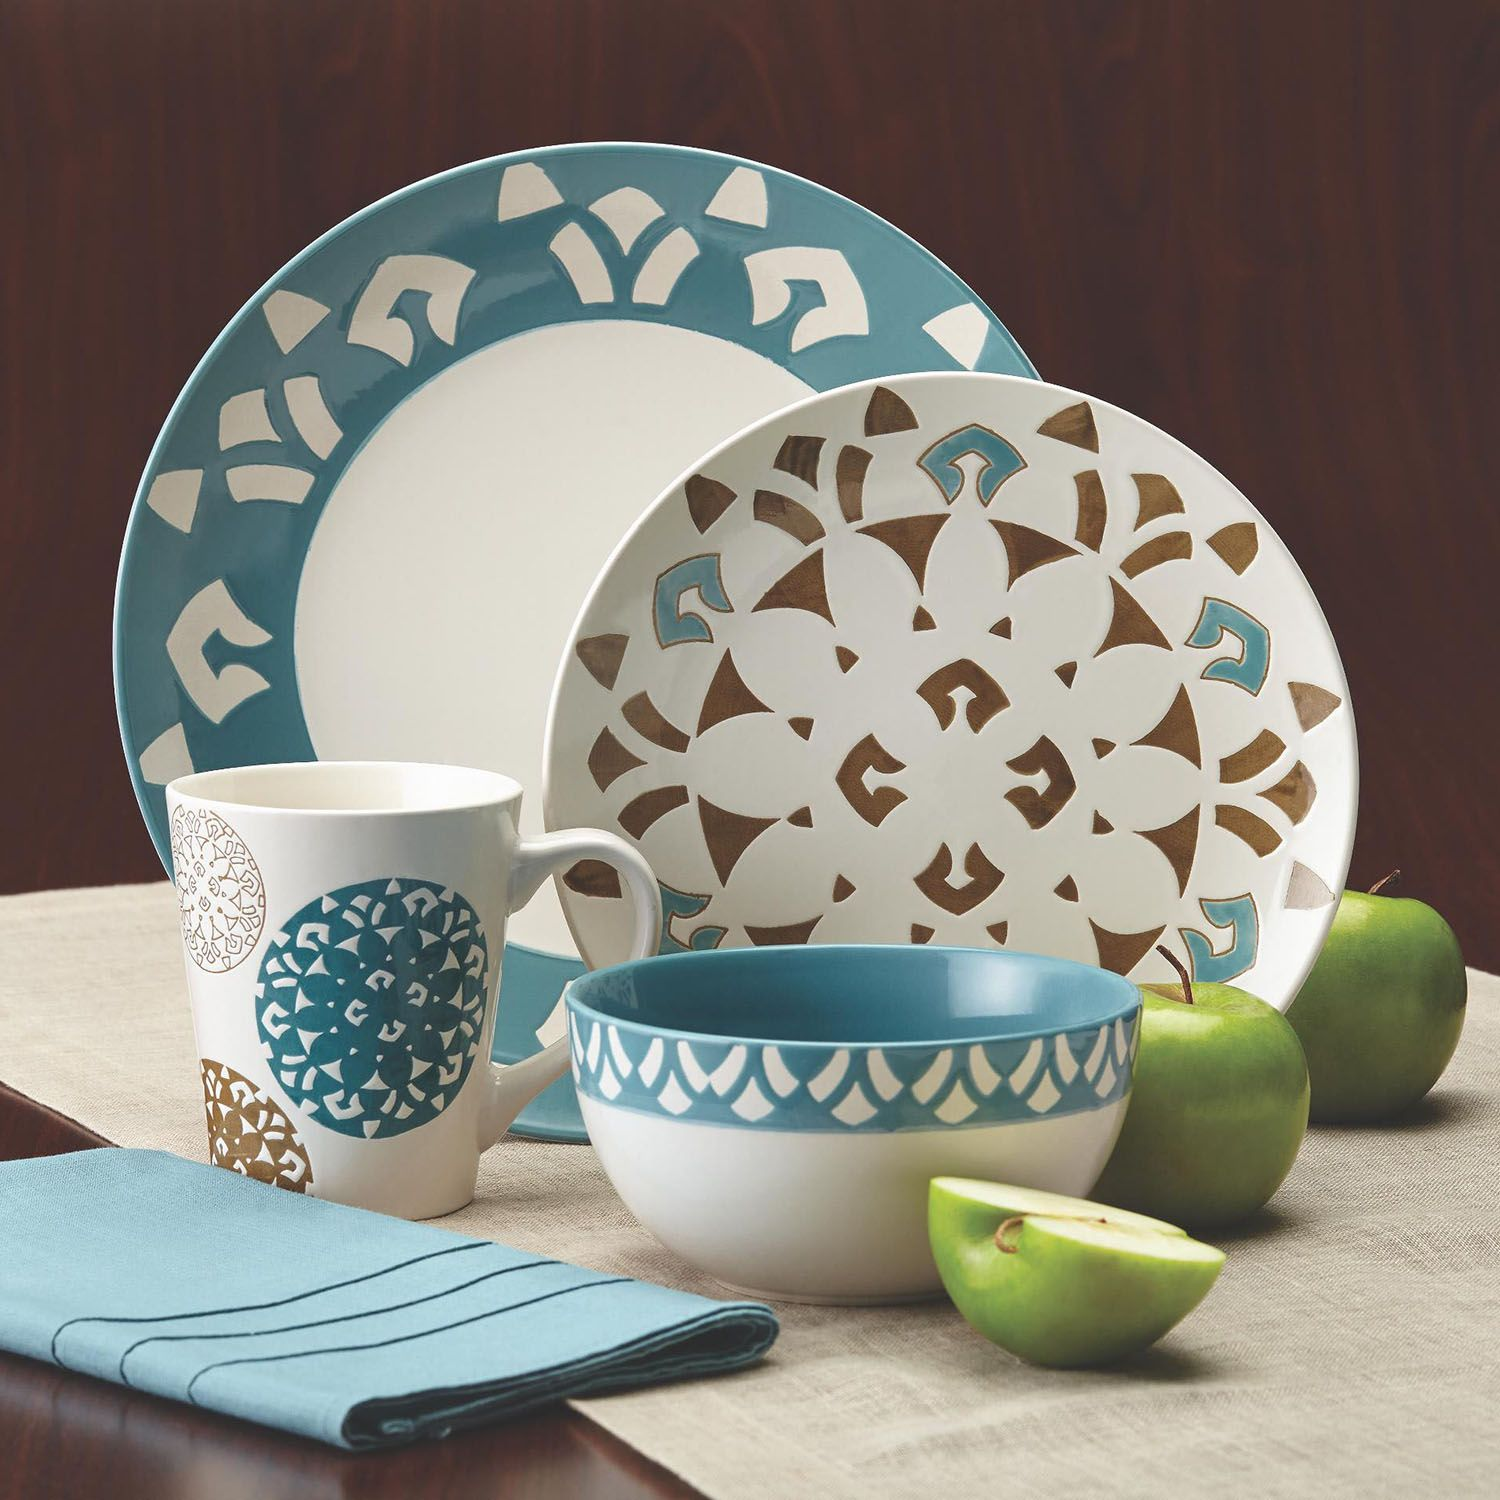 Rachael Ray Pendulum 16-pc. Dinnerware Set & Rachael Ray Dinnerware u0026 Serveware Kitchen u0026 Dining | Kohlu0027s